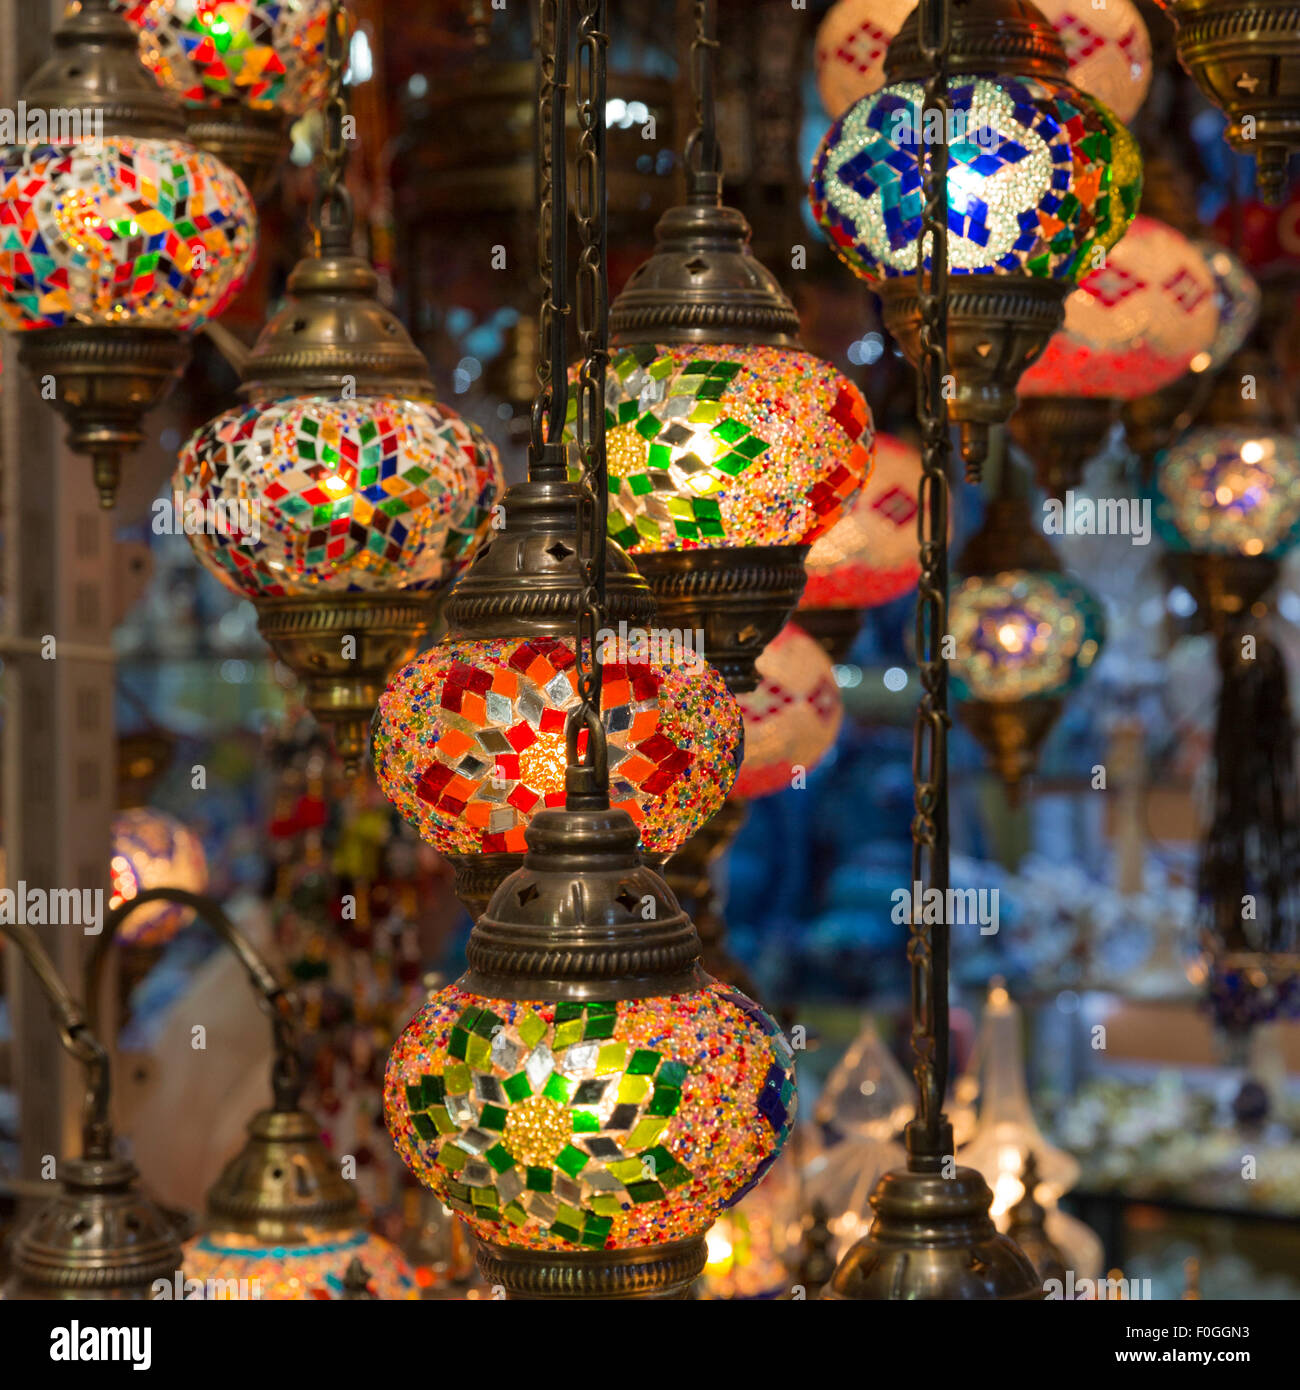 Brightly colored lamps for sale in a lamp shop in the Grand Bazaar, Istanbul, Turkey - Stock Image